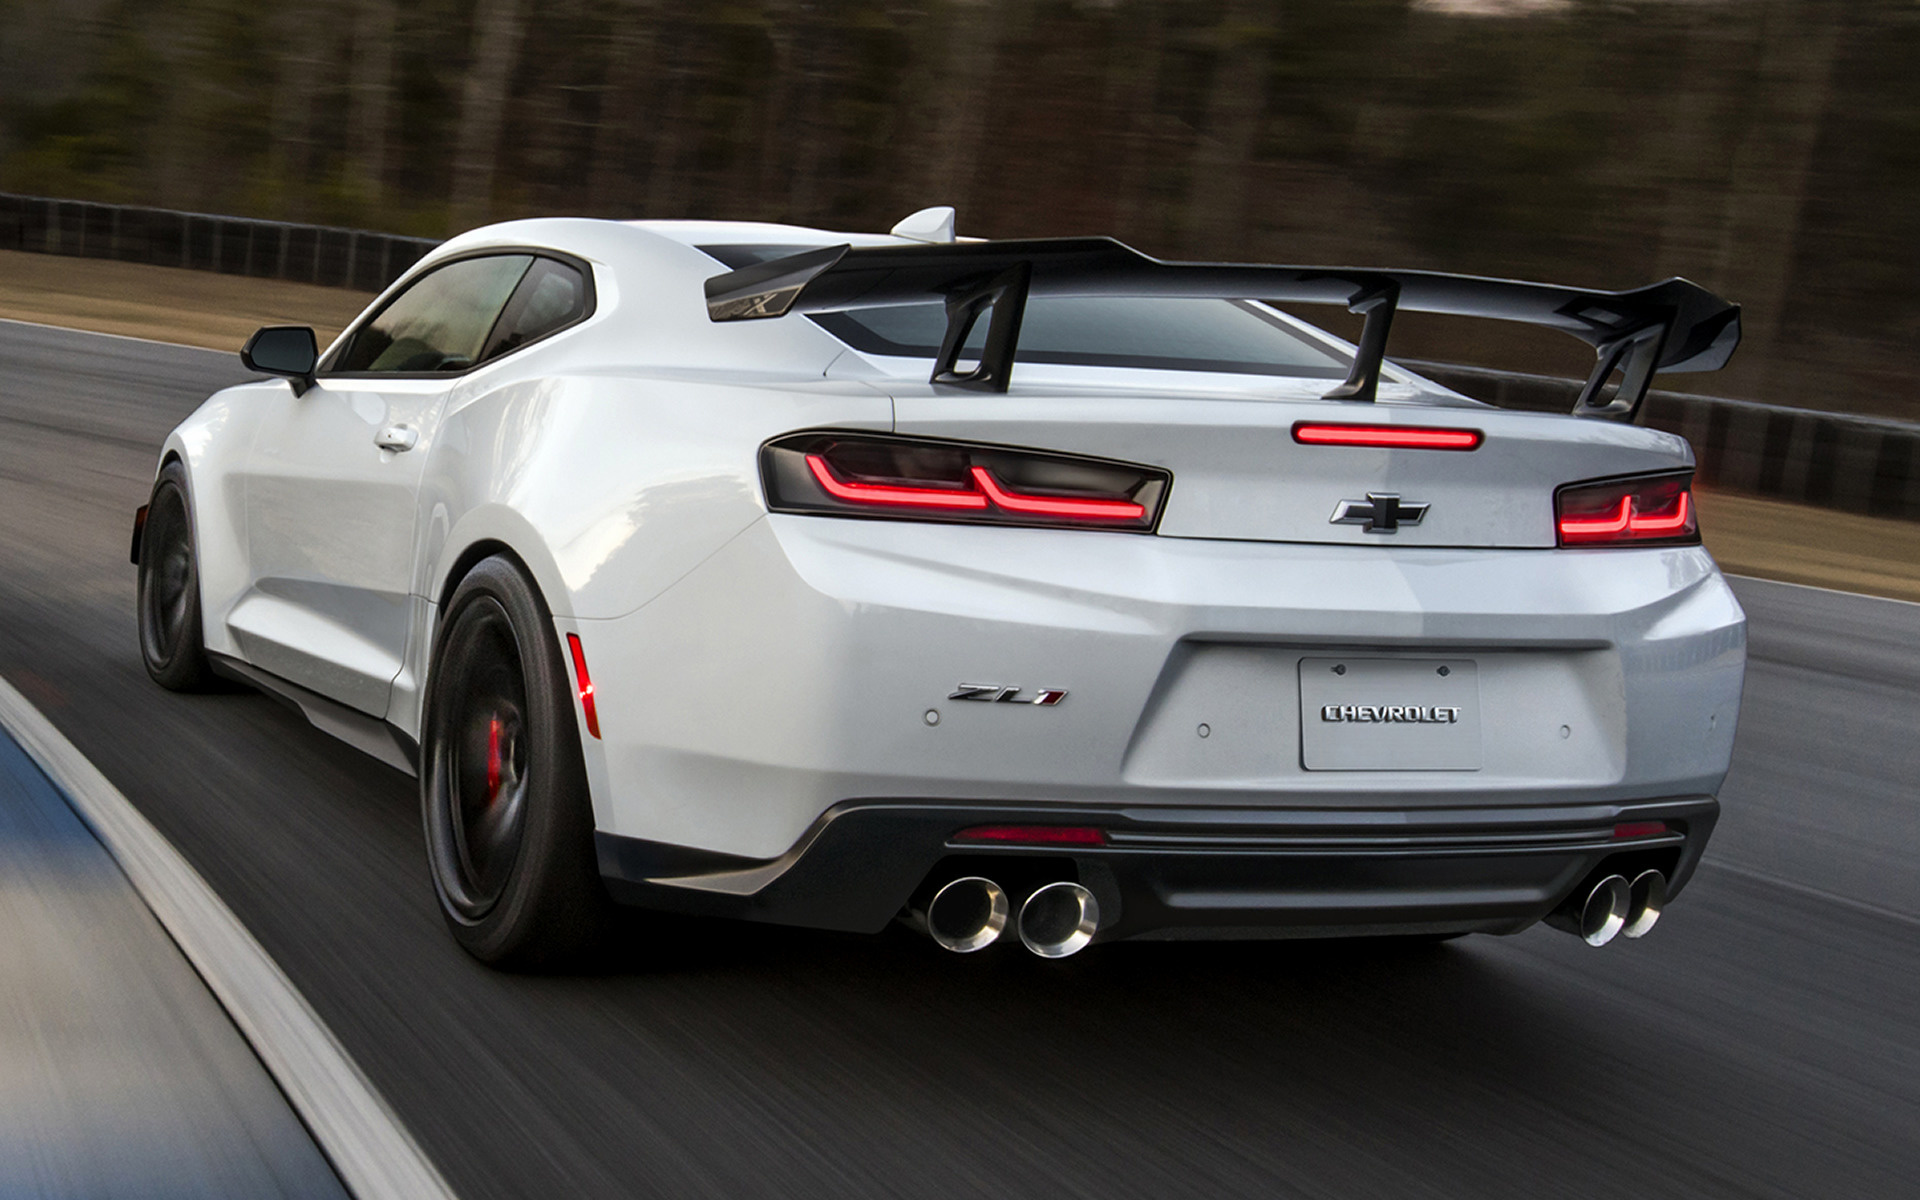 2018 Chevrolet Camaro Zl1 1le Wallpapers And Hd Images